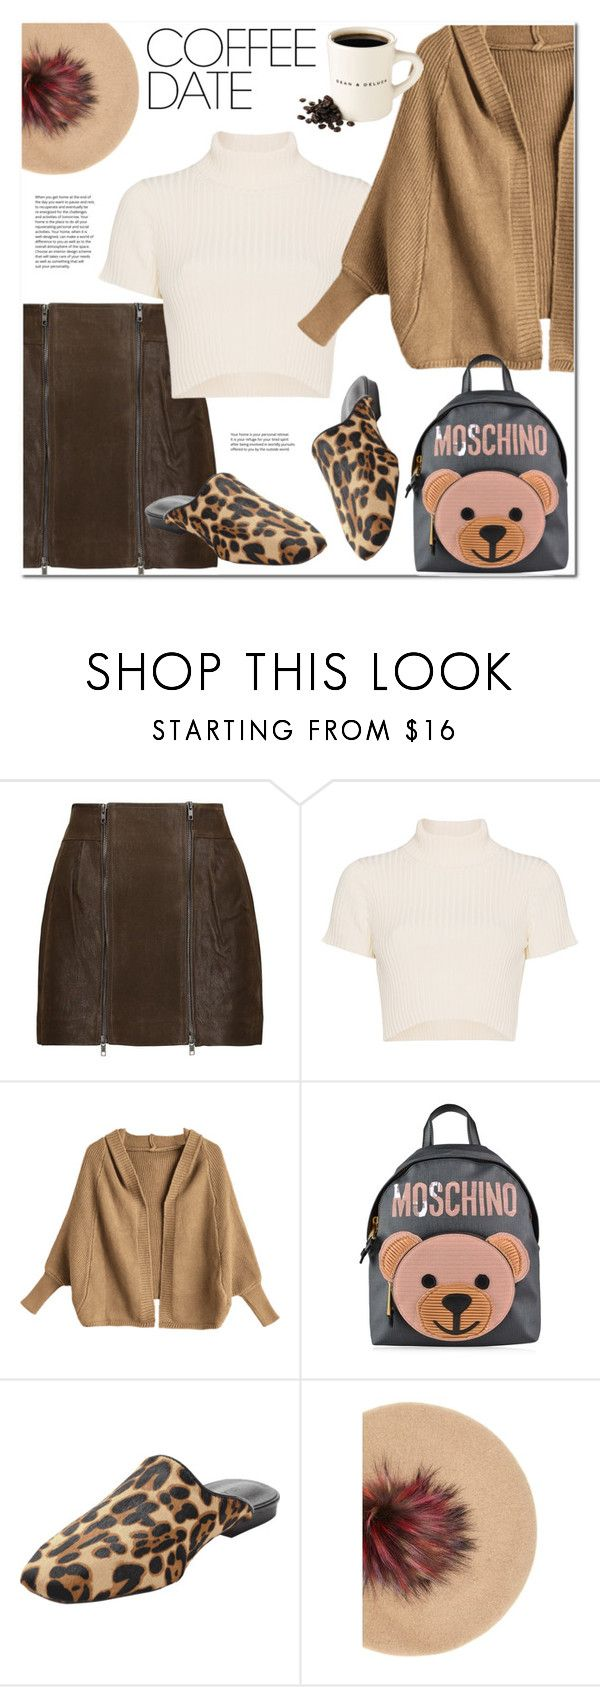 """Buzz-Worthy: Coffee Date"" by ansev ❤ liked on Polyvore featuring Melissa Odabash, Staud, Moschino, Forever 21, CoffeeDate and statementbags"